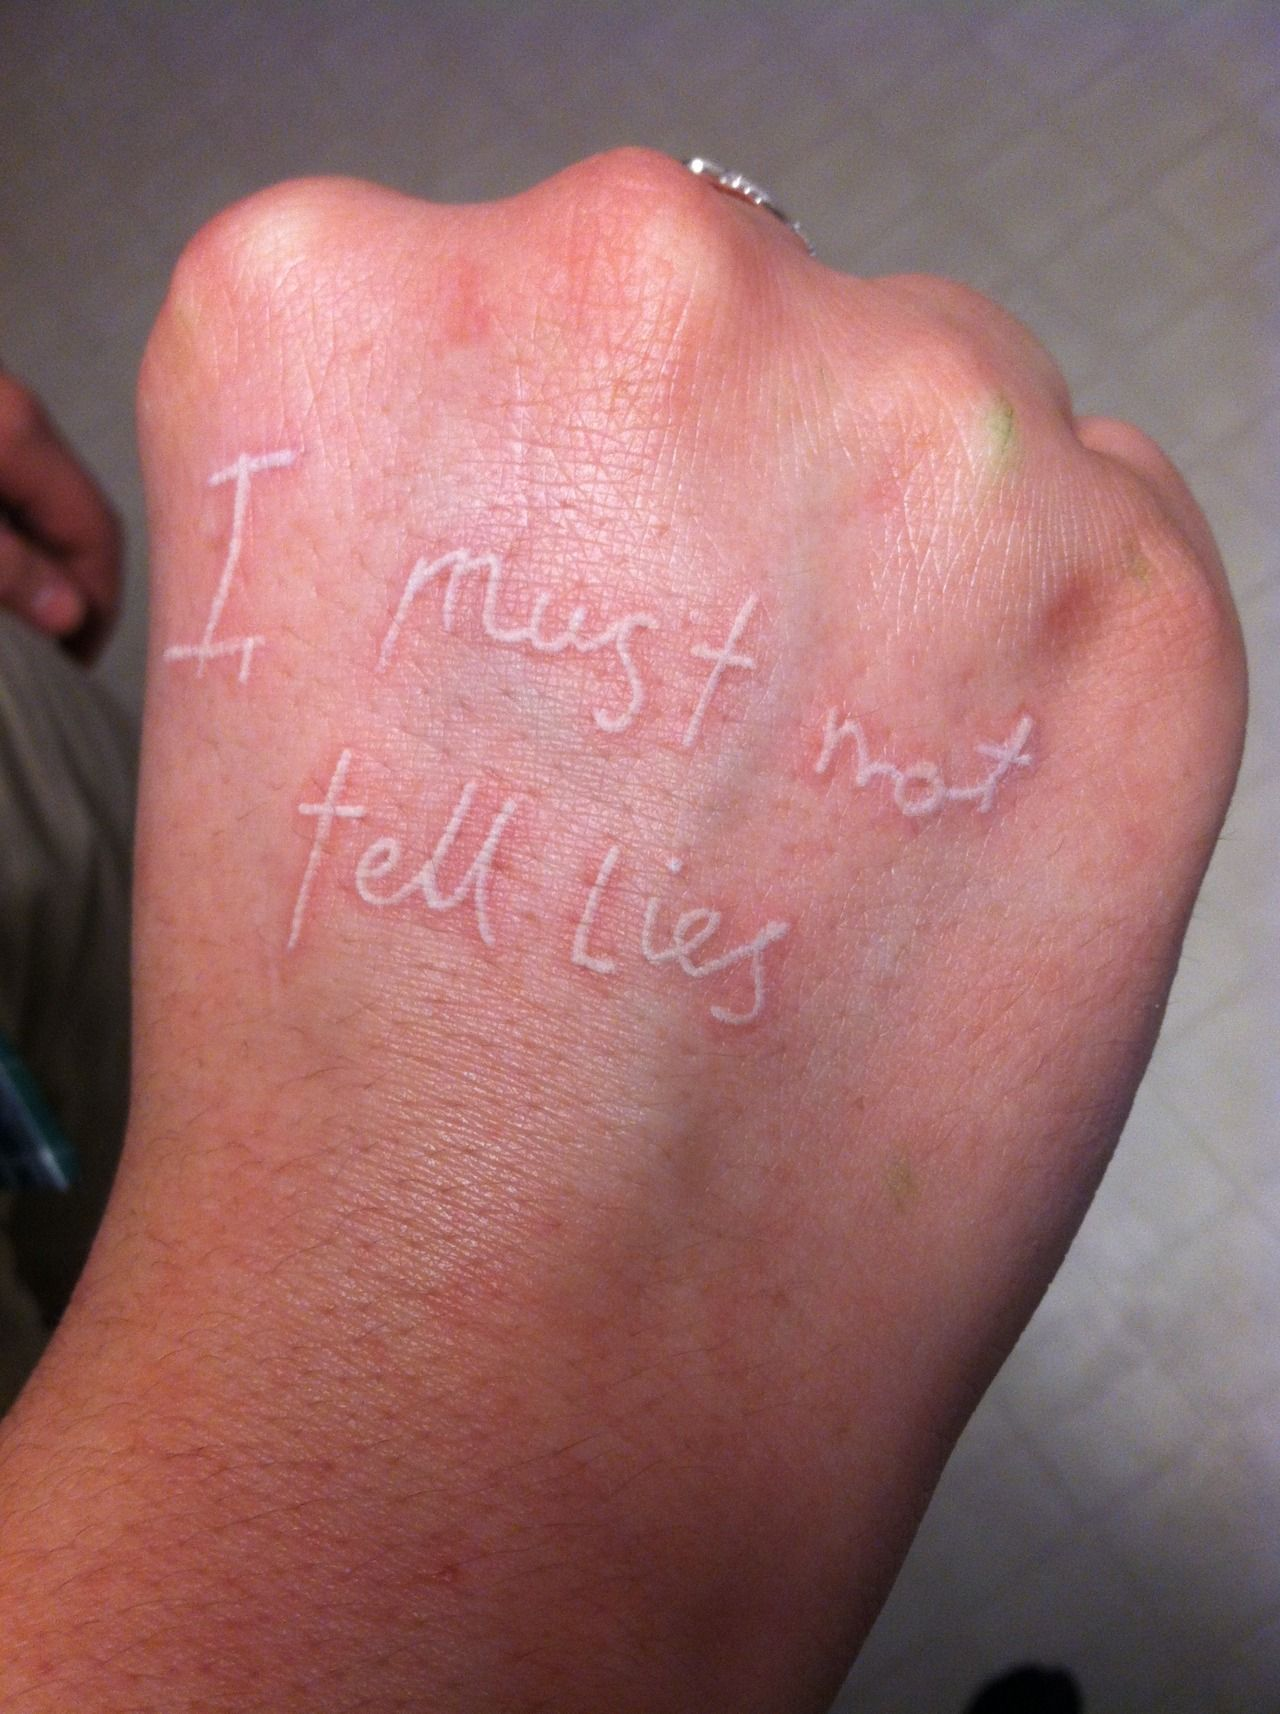 Harry Potter Tattoo On Hand I Must Not Tell Lies D Ideas And Designs